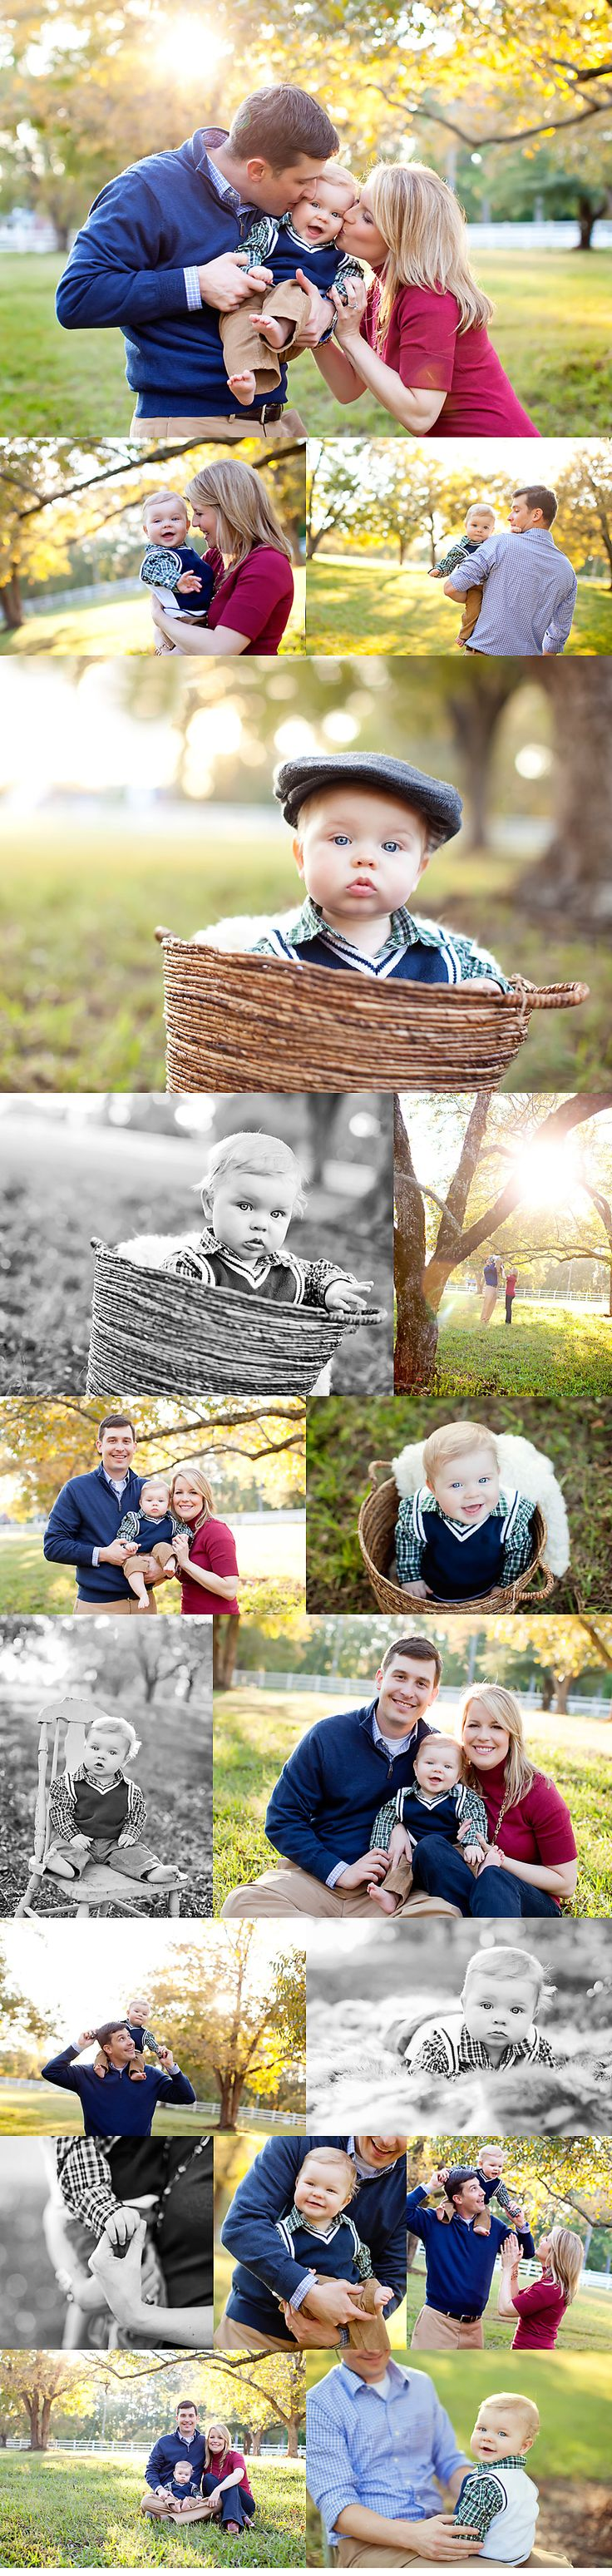 family shoot with 9 mos old.  Love the basket idea!